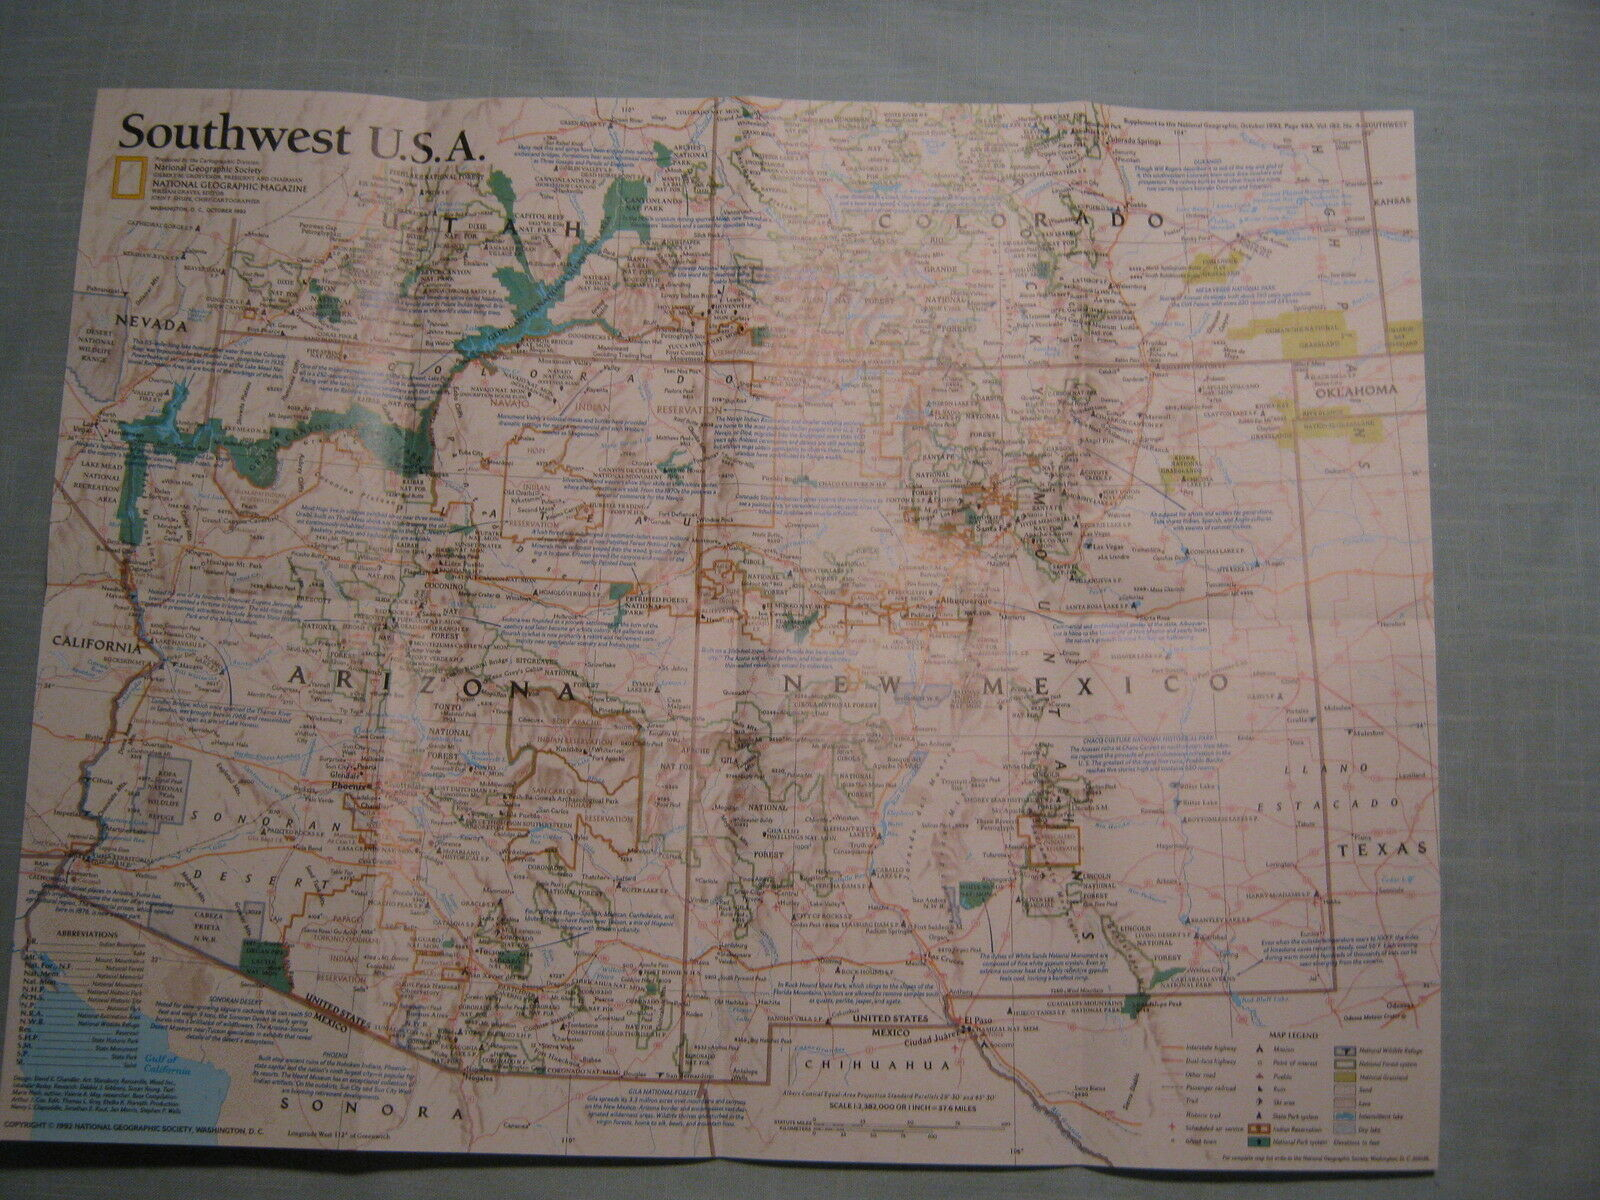 Southwest U S A Map Zion Grand Canyon National Geographic October 1992 Mint